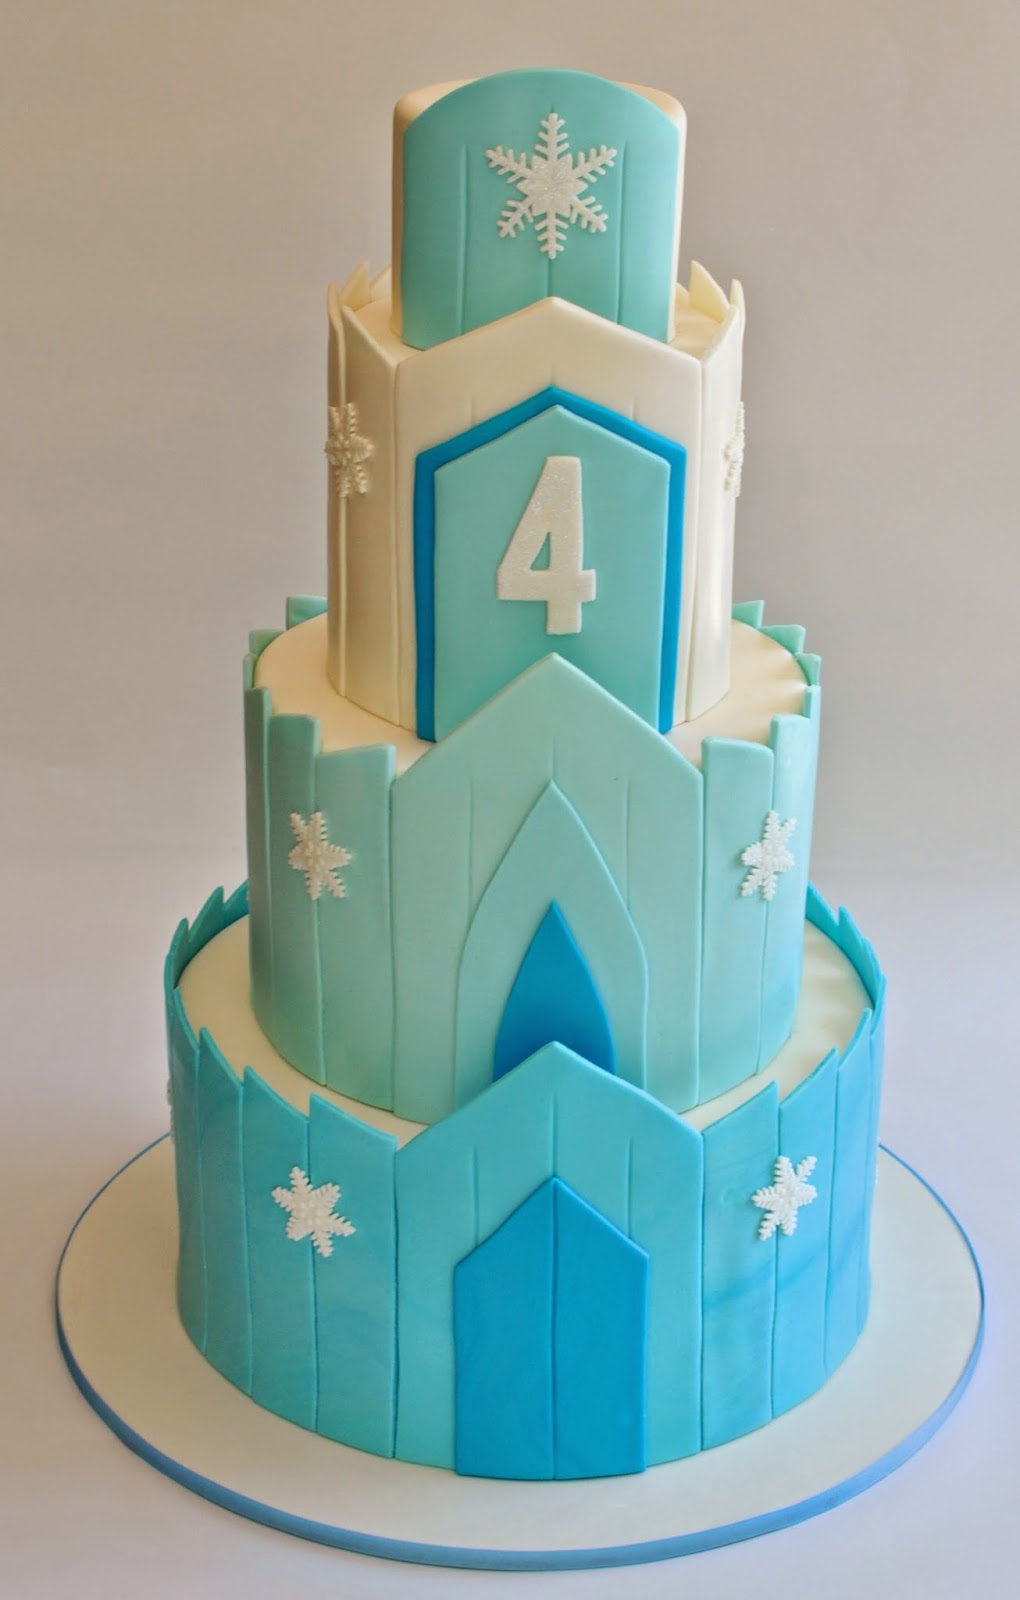 Hopes Sweet Cakes Avengers Super Hero and Frozen Ice Castle Cake